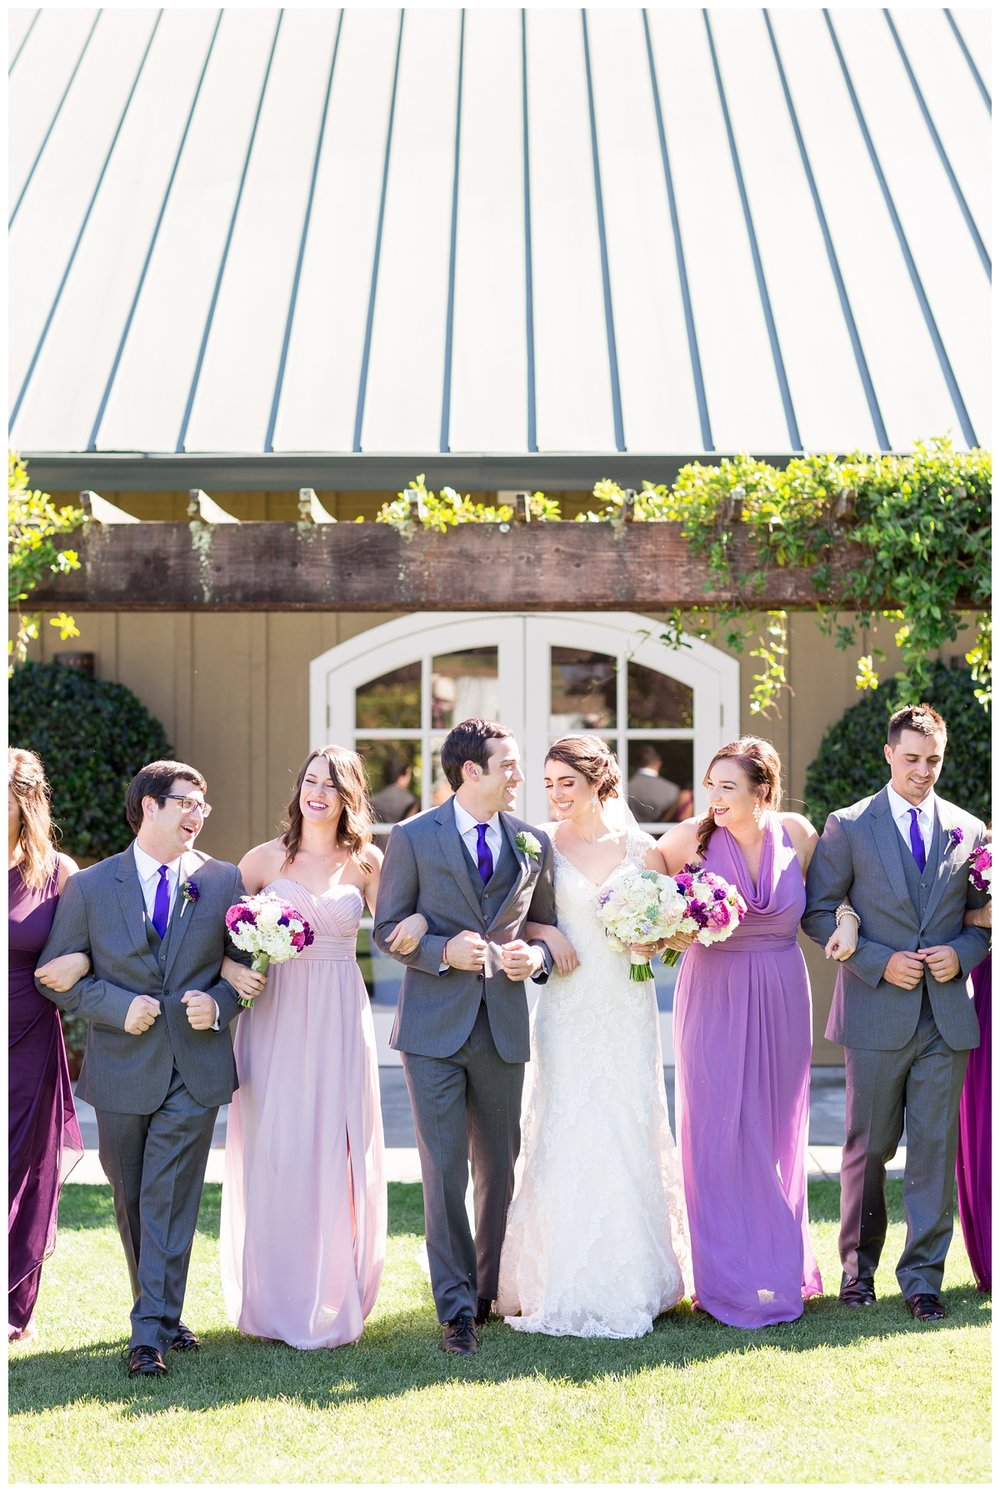 Trentadue-Winery-Wedding-Photographer-Santa-Rosa_2302.jpg